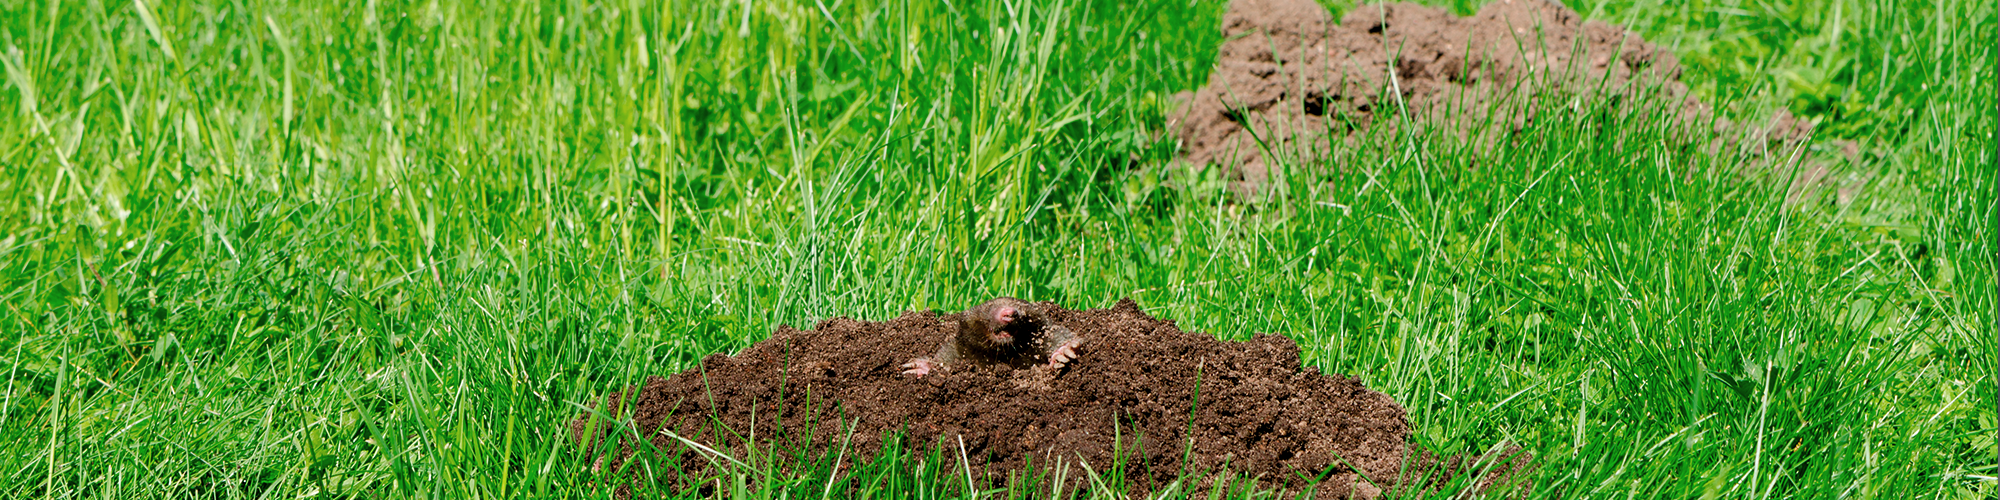 How Do You Get Rid Of Moles In Your Yard Humanely